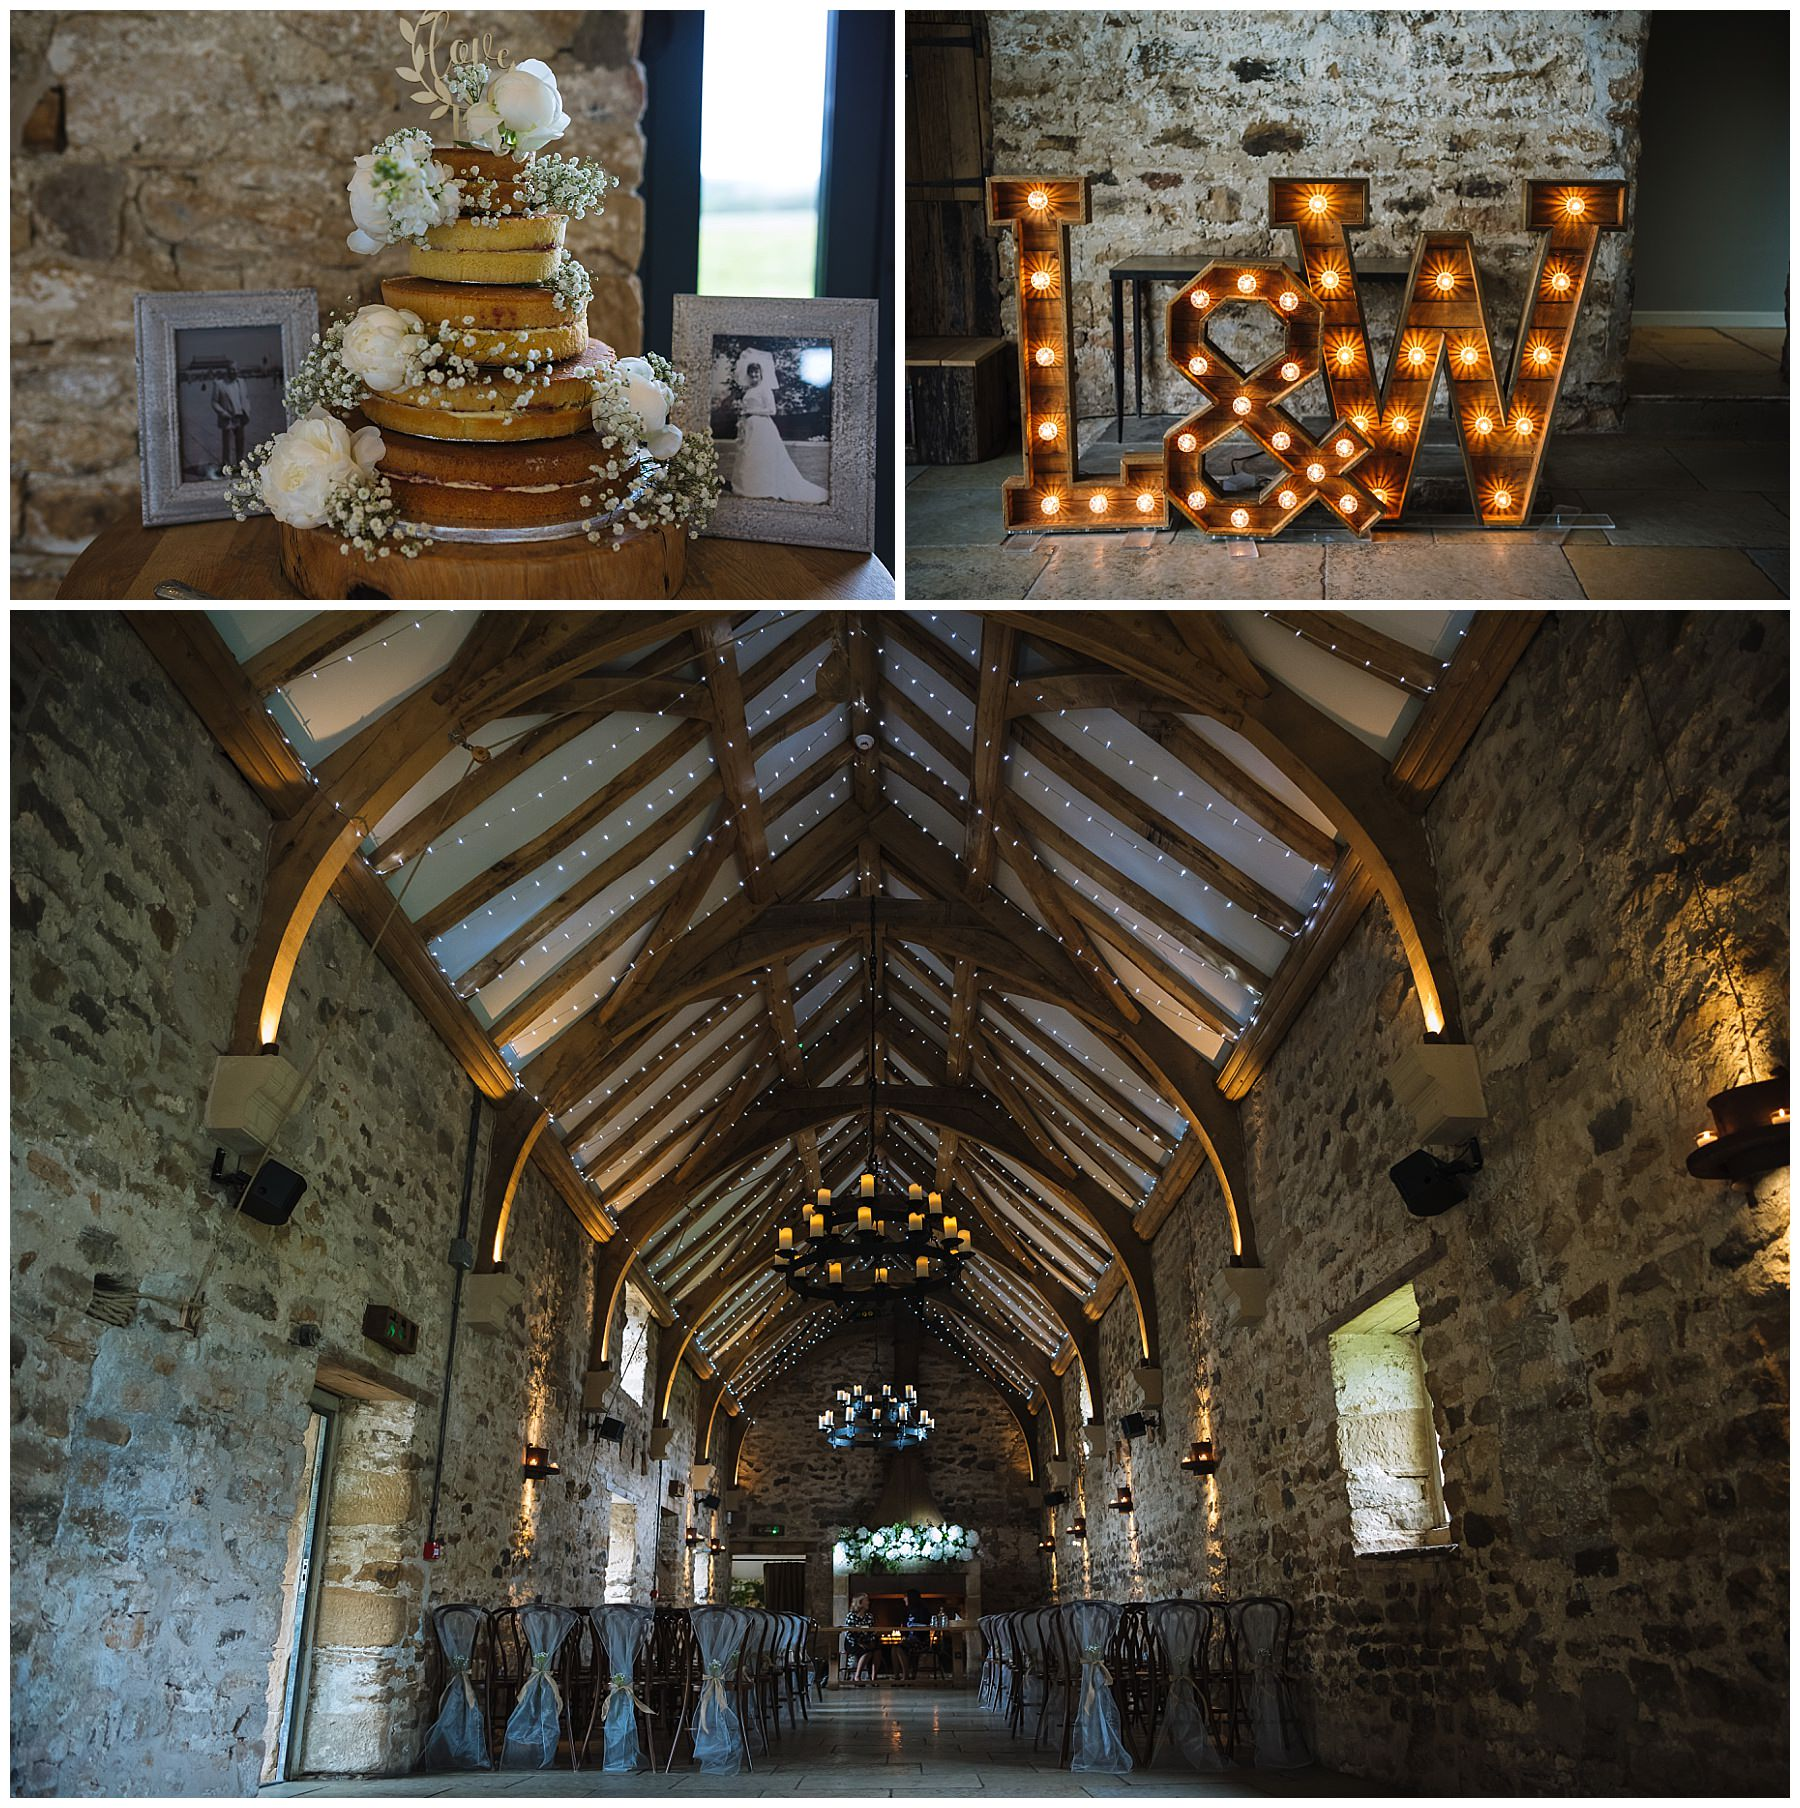 Healey Barn Wedding Venue in the North East Of England